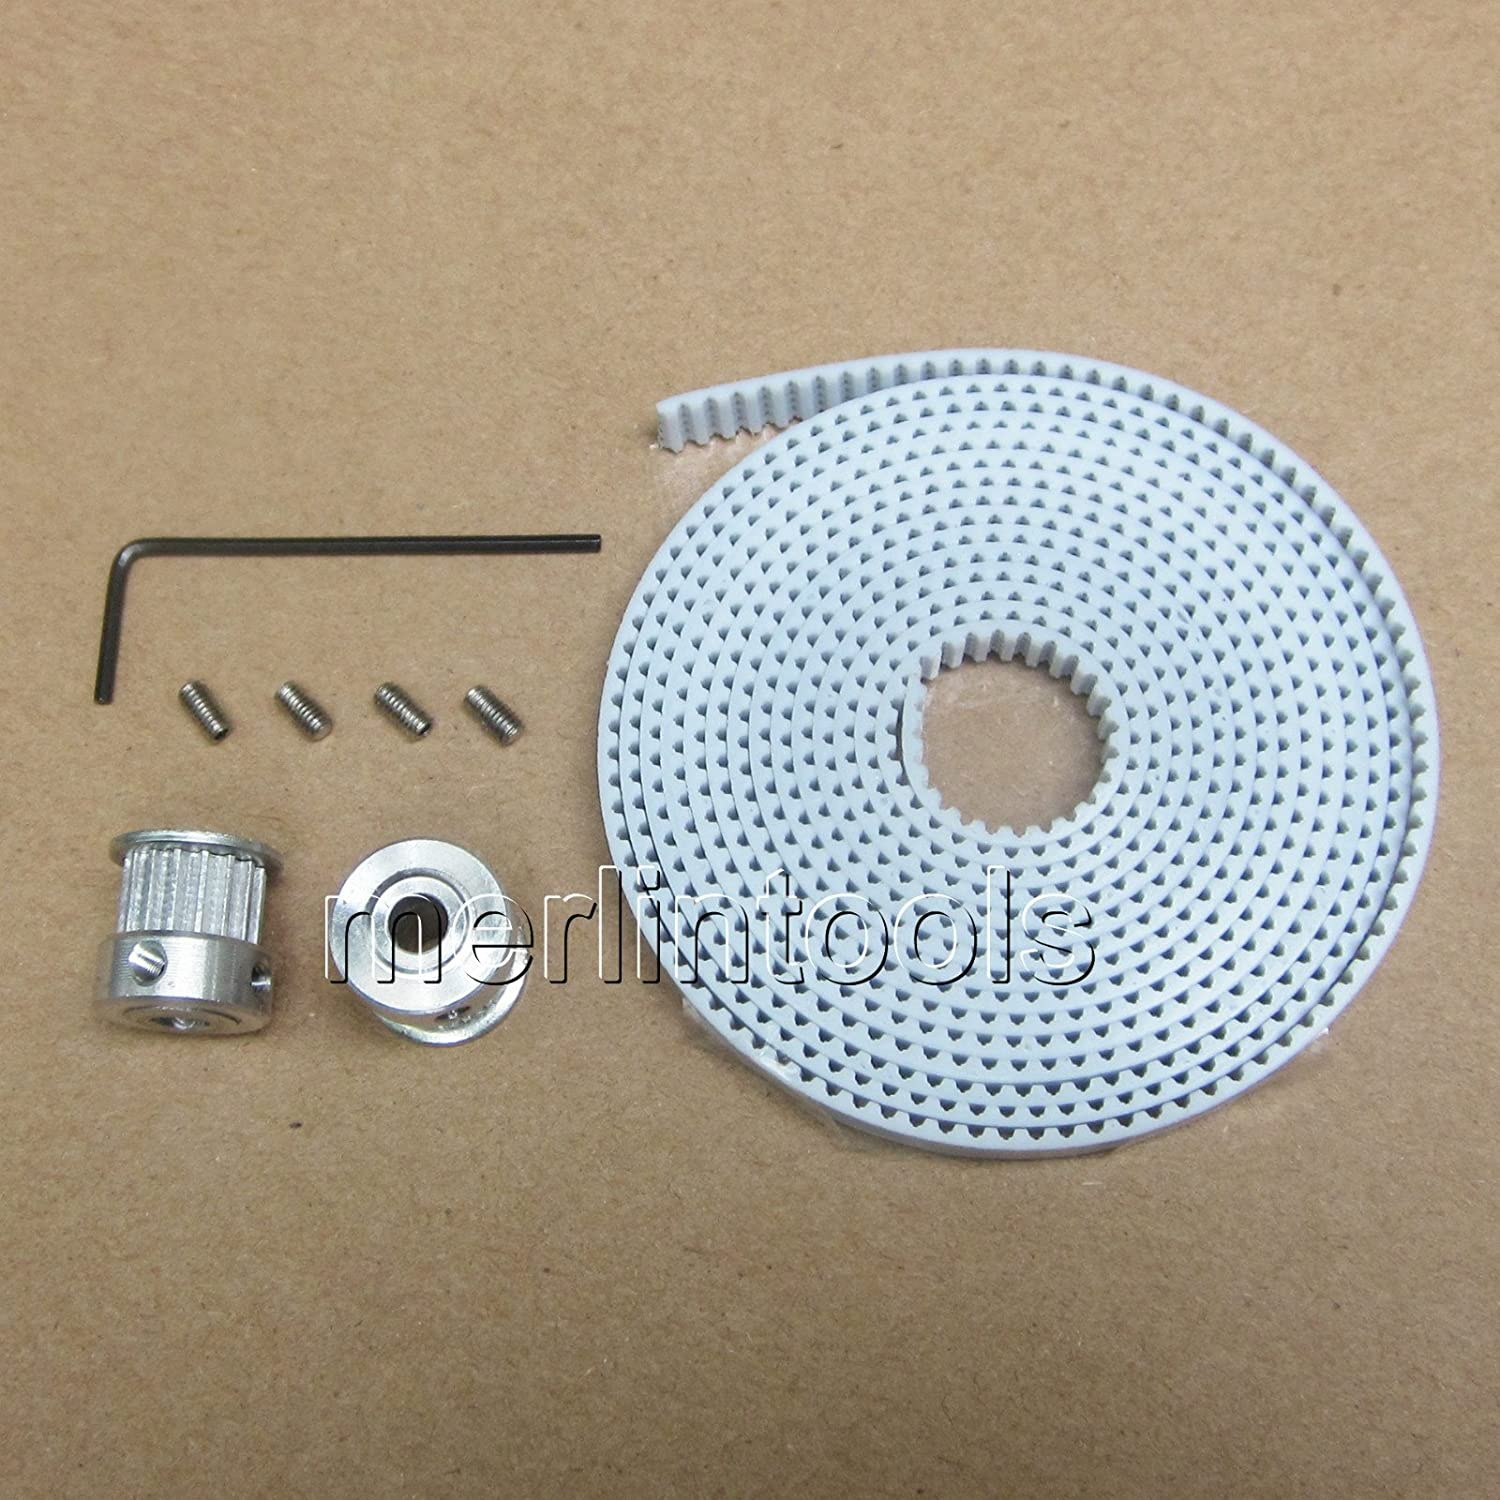 Reprap 3D Printer T2.5 Timing Belts and Pulleys 8mm Shaft with 16 Teeth